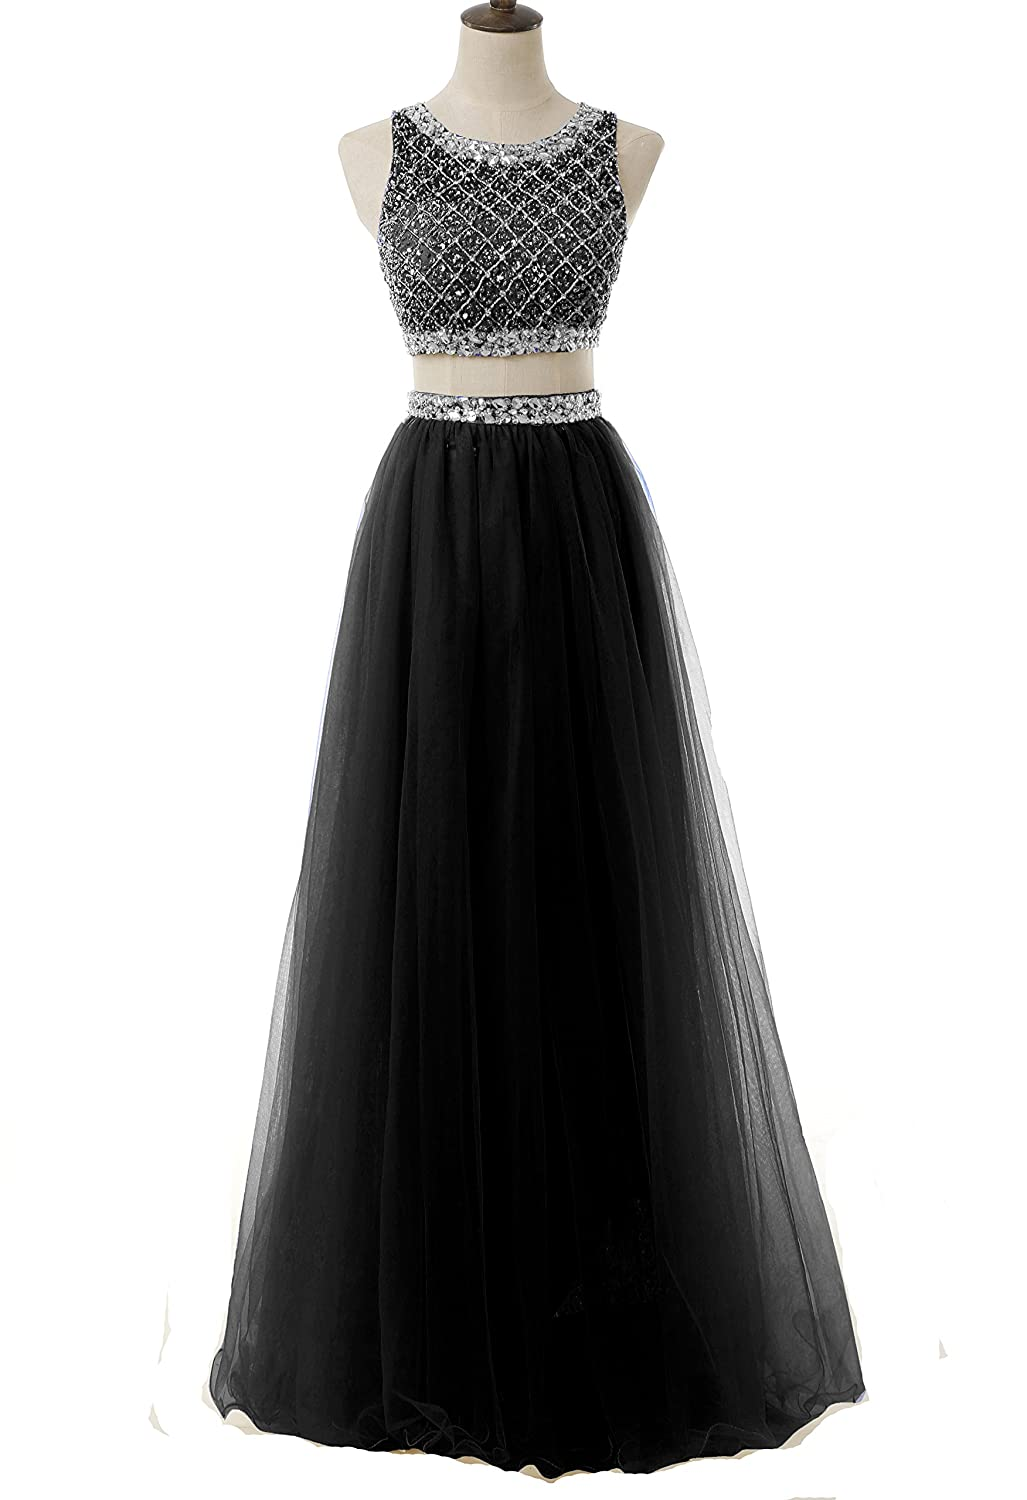 8c740f7b9cb Amazon.com  BessDress Two Piece Sequined Bodice Prom Dresses 2017 Long  Beaded Ball Gowns BD066  Clothing